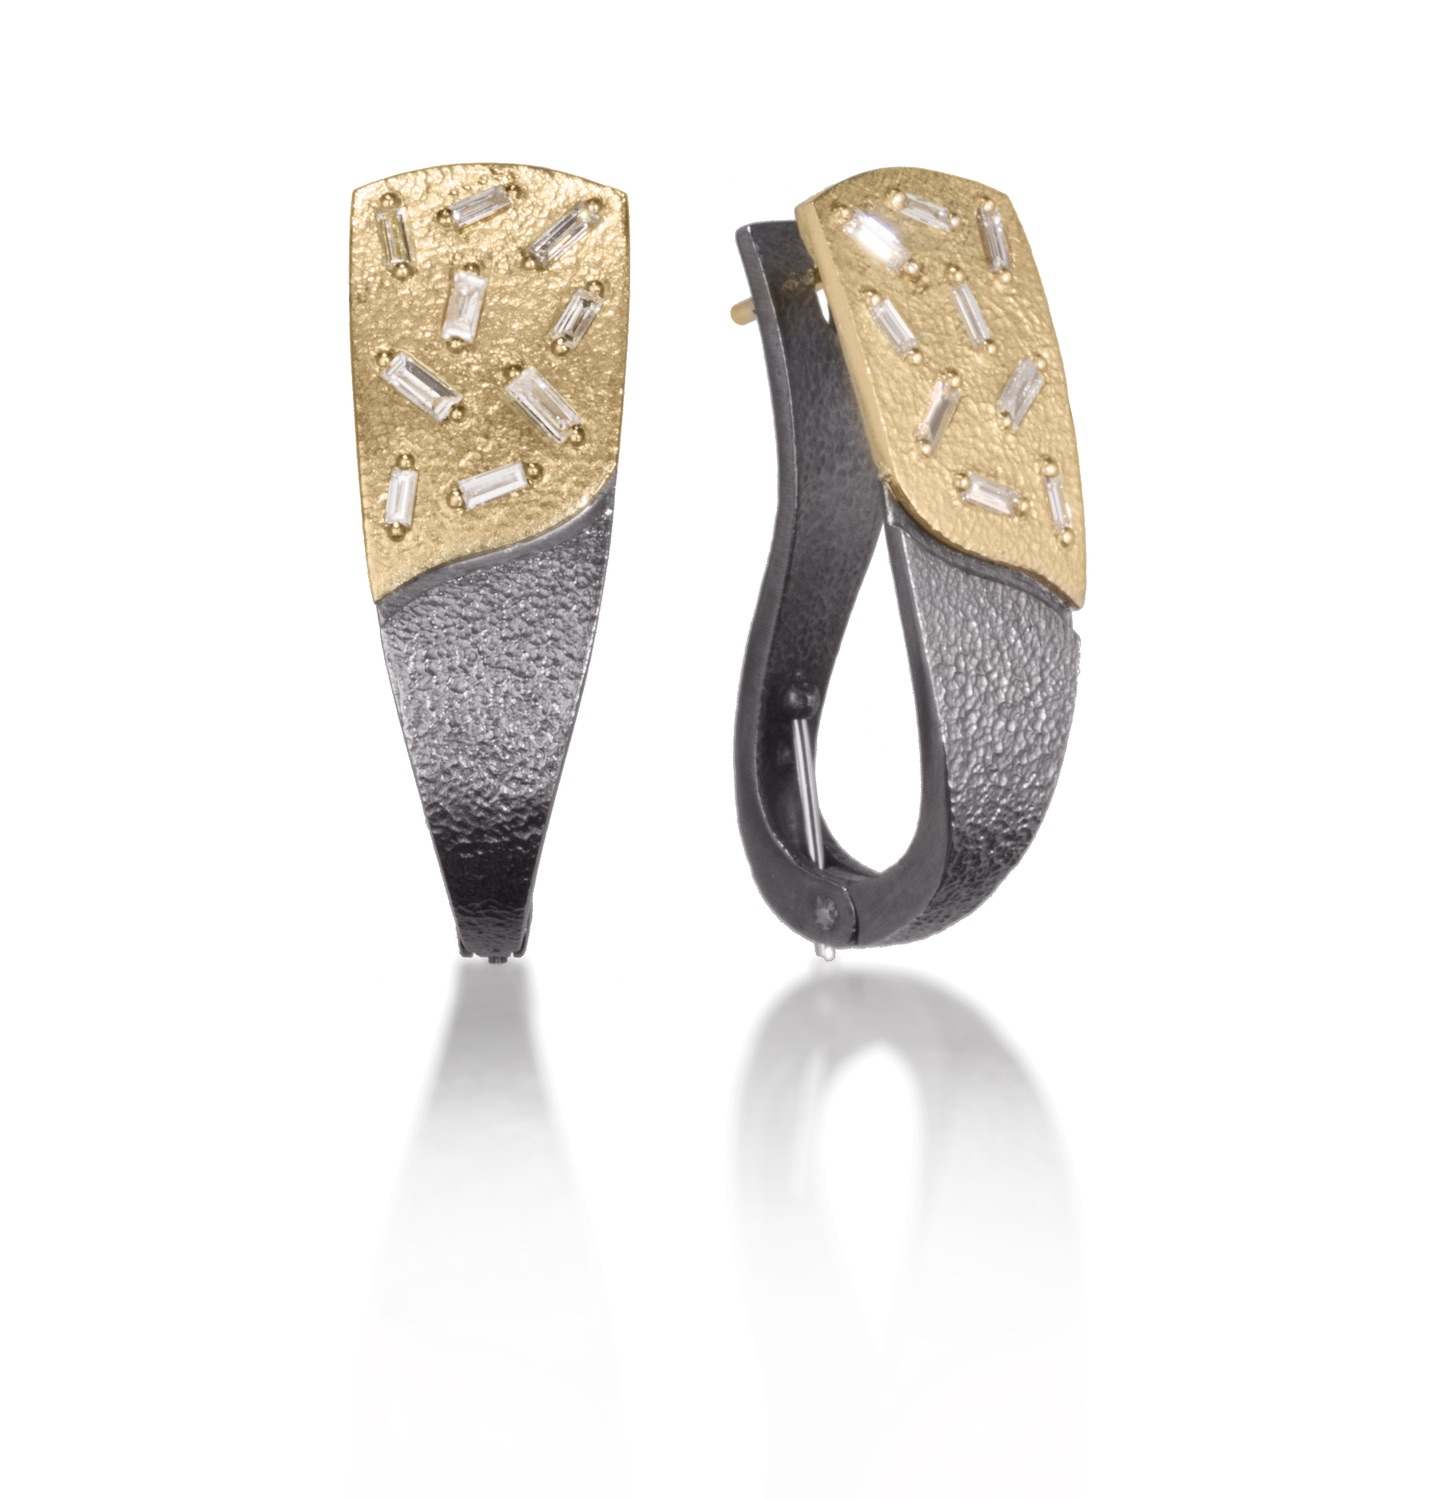 The Jewel - Elizabeth Garvin - Lookbook - Gold and Silver Earrings